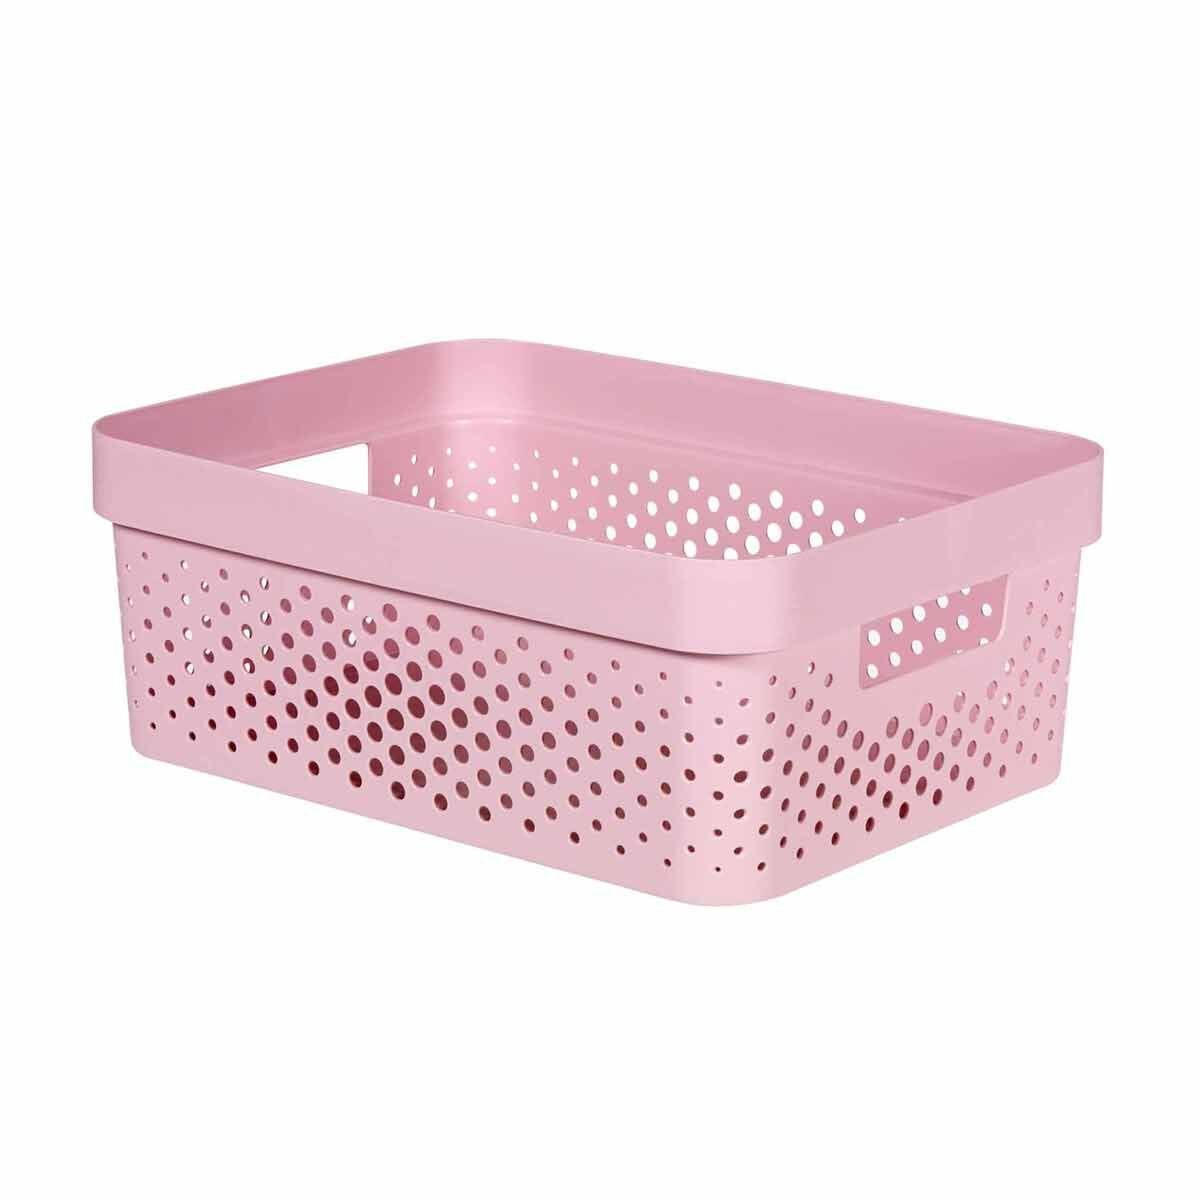 Curver Infinity Recycled Storage Basket 11 Litre Pink